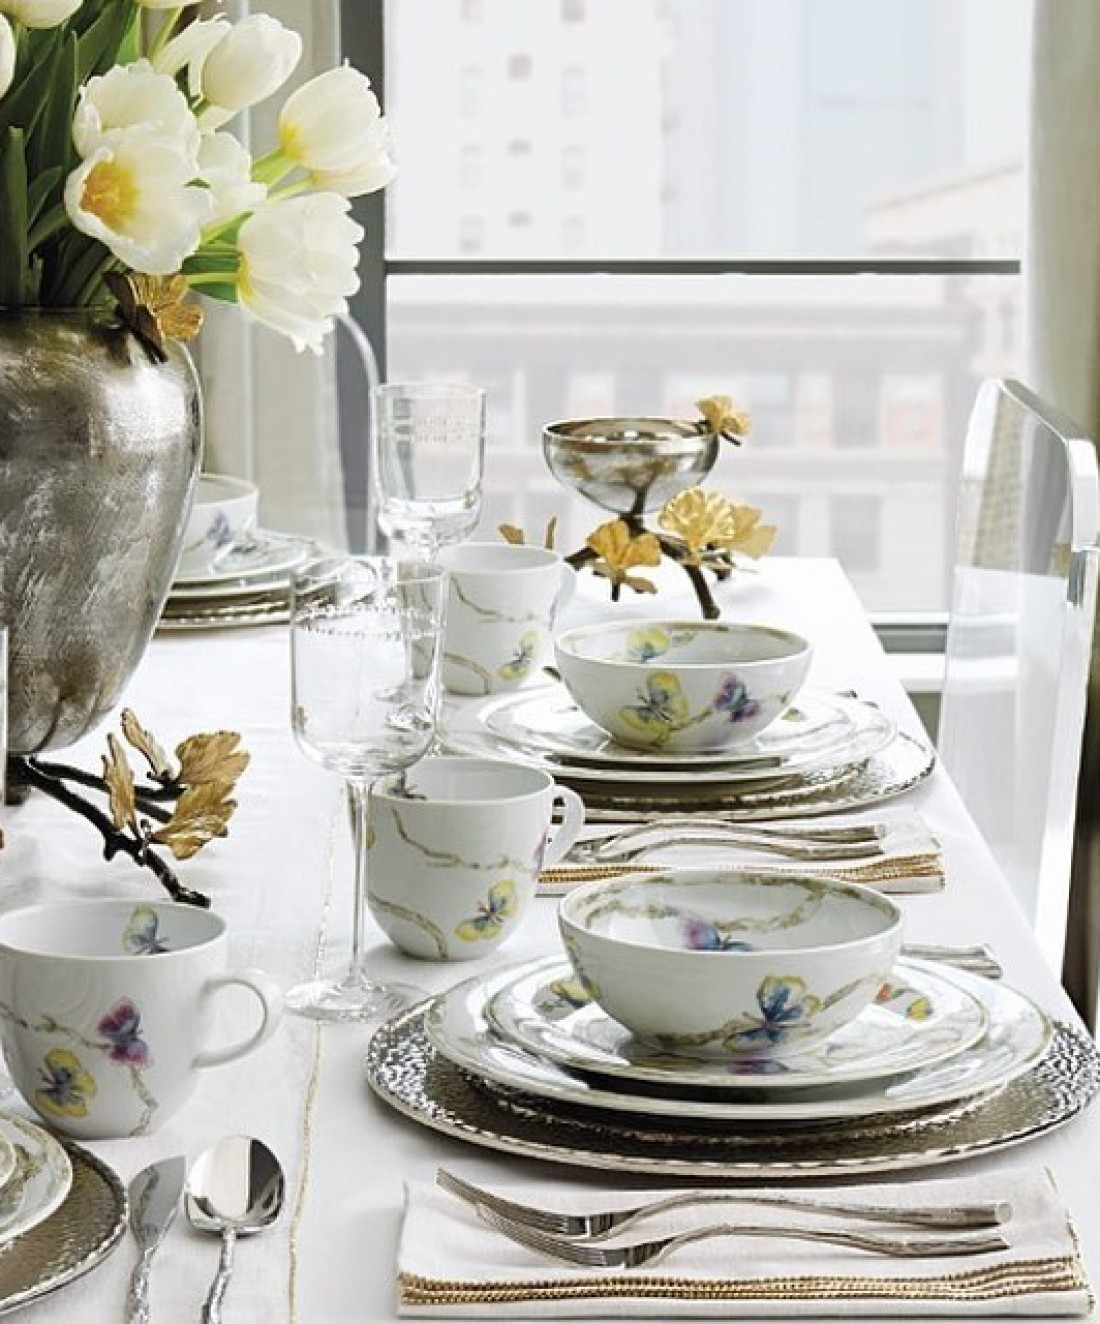 Donot Want A Wedding Gift List : Planning Your Wedding? 7 Gift Registry Mistakes You Don t Want to ...